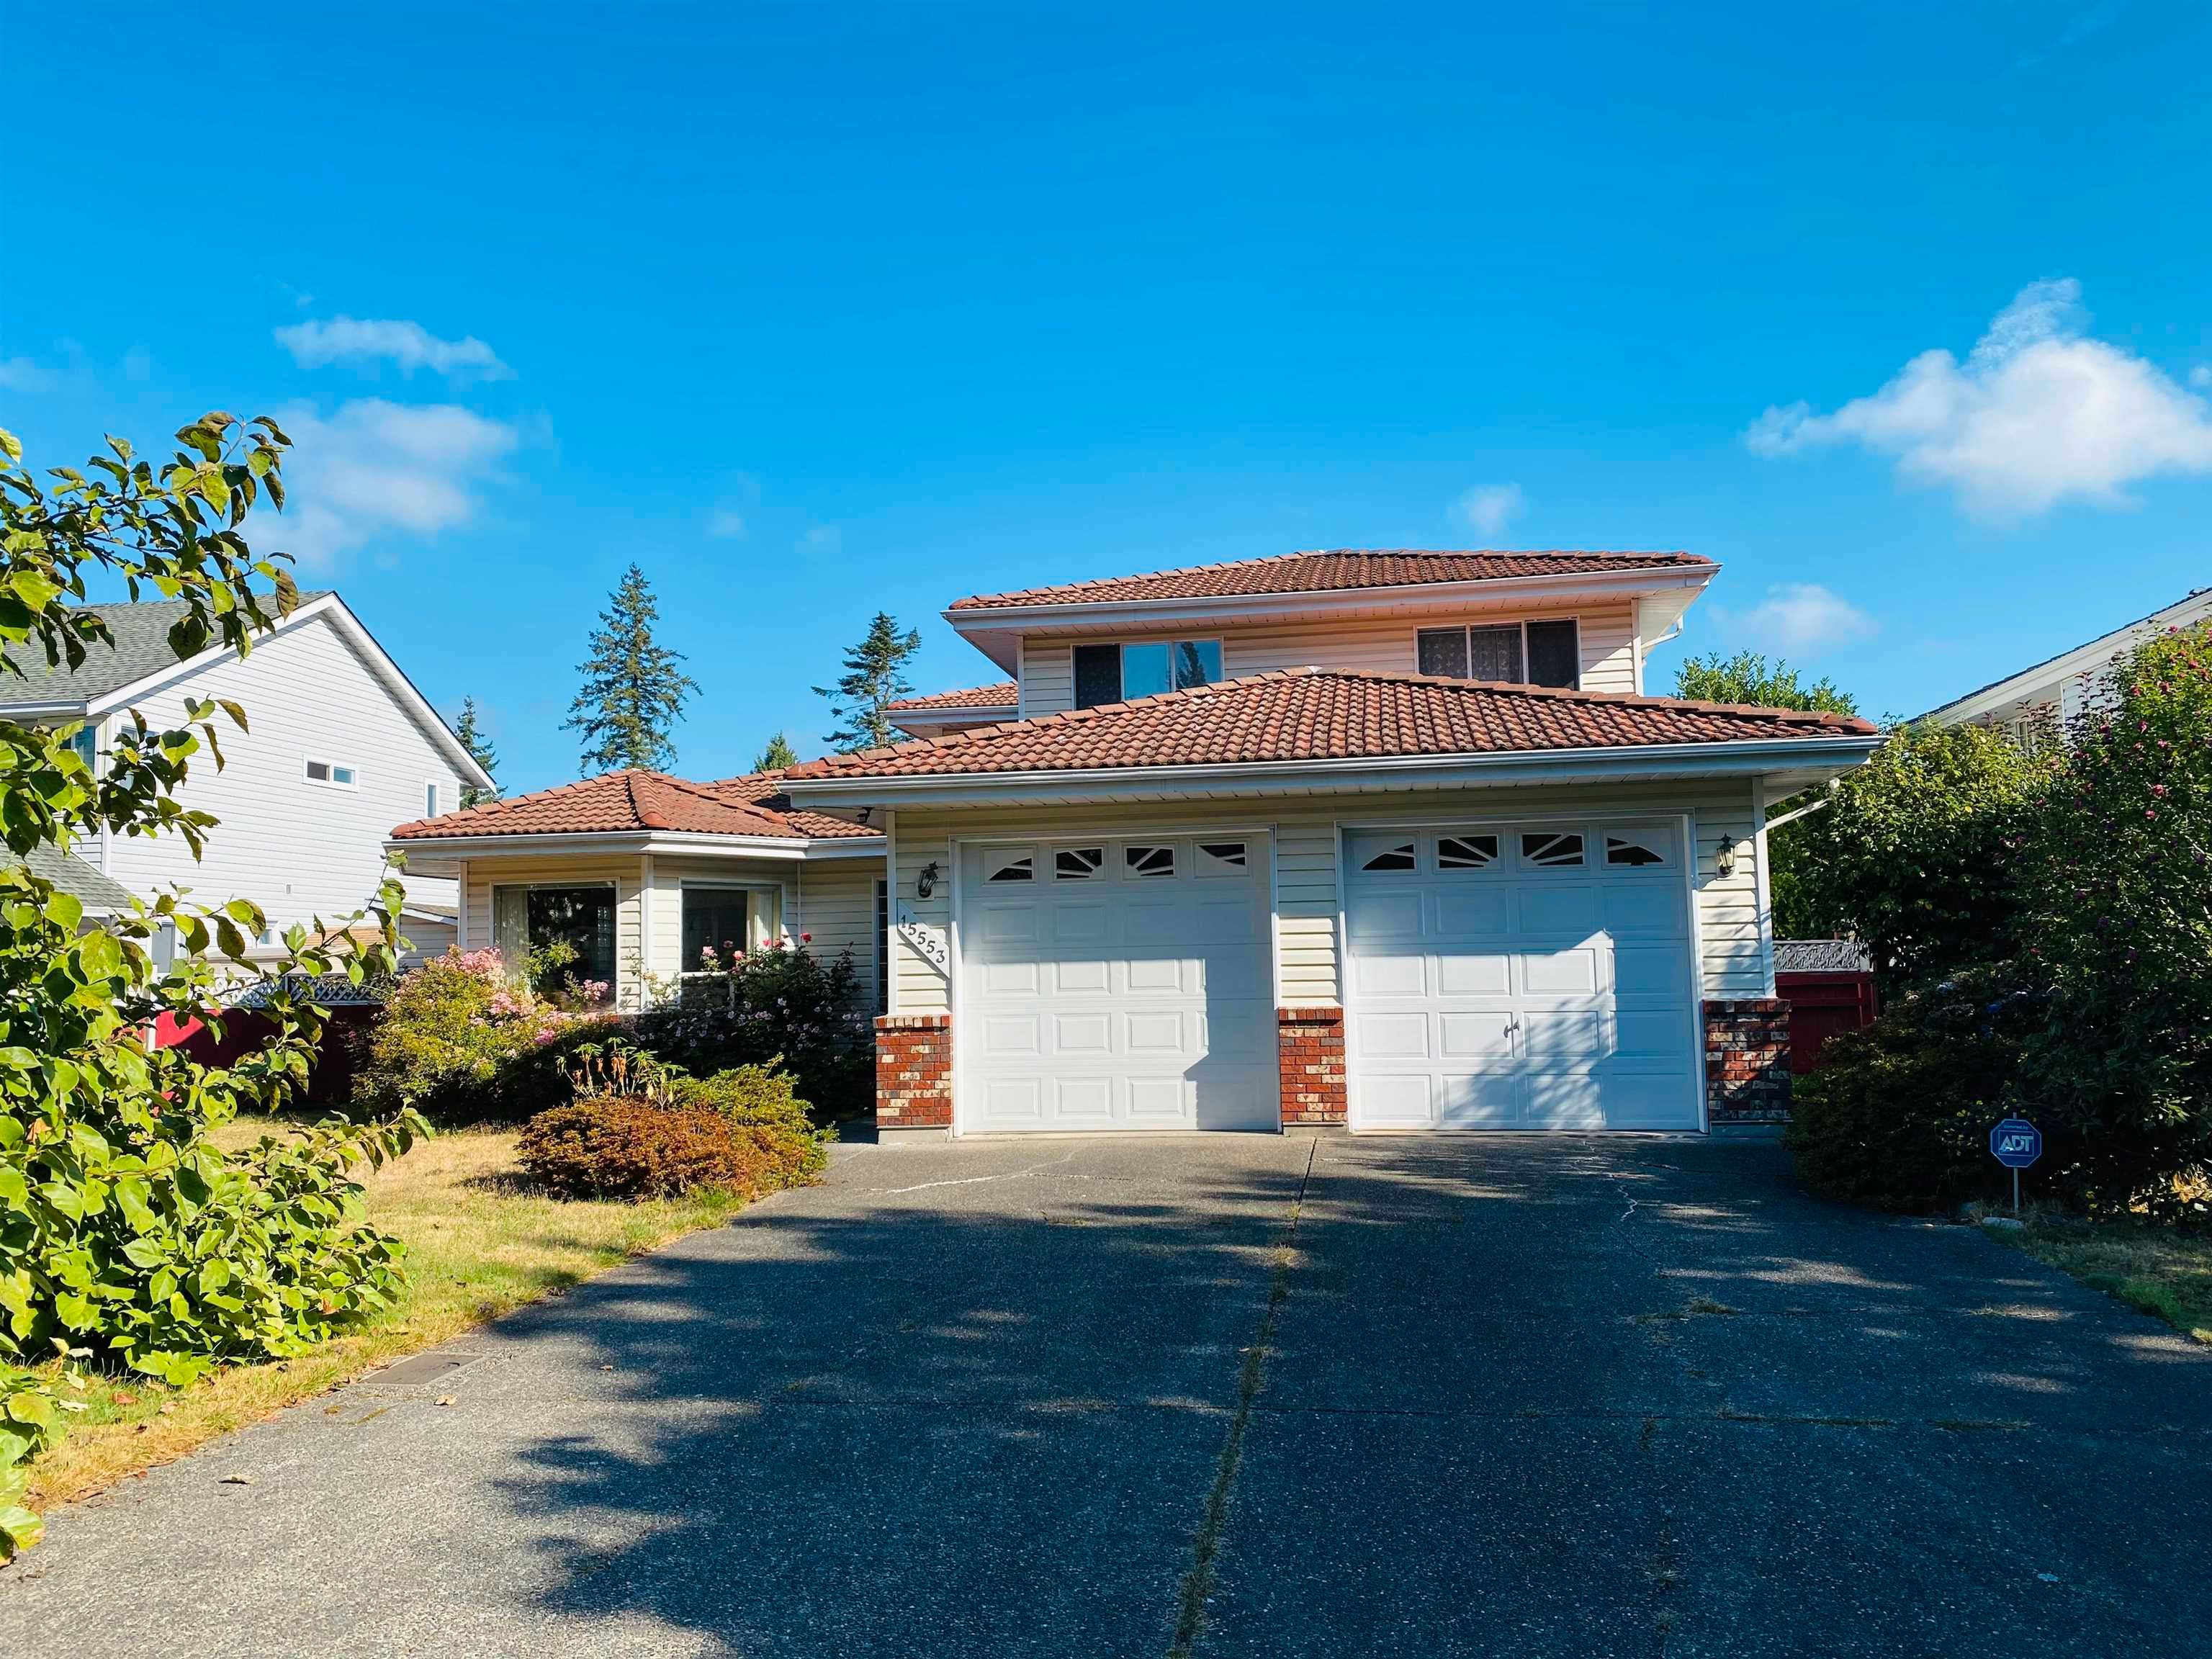 Main Photo: 15553 91A Avenue in Surrey: Fleetwood Tynehead House for sale : MLS®# R2613999